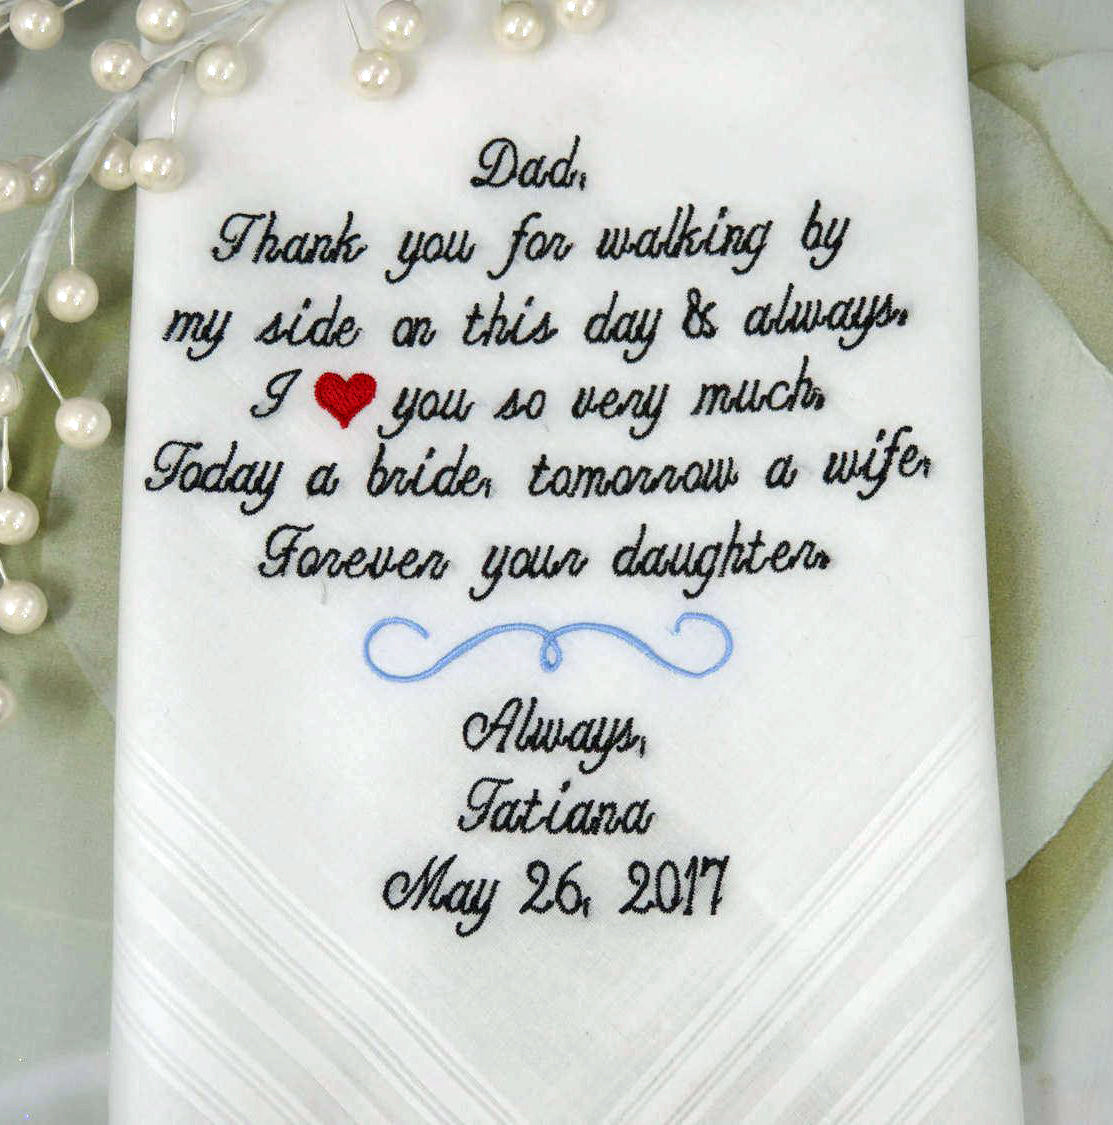 af2685f883 Father of the Bride Gift EMBROIDERED Personalized Wedding Handkerchief Wedding  Gift For Dad From The Bride You may choose up to 40 words.